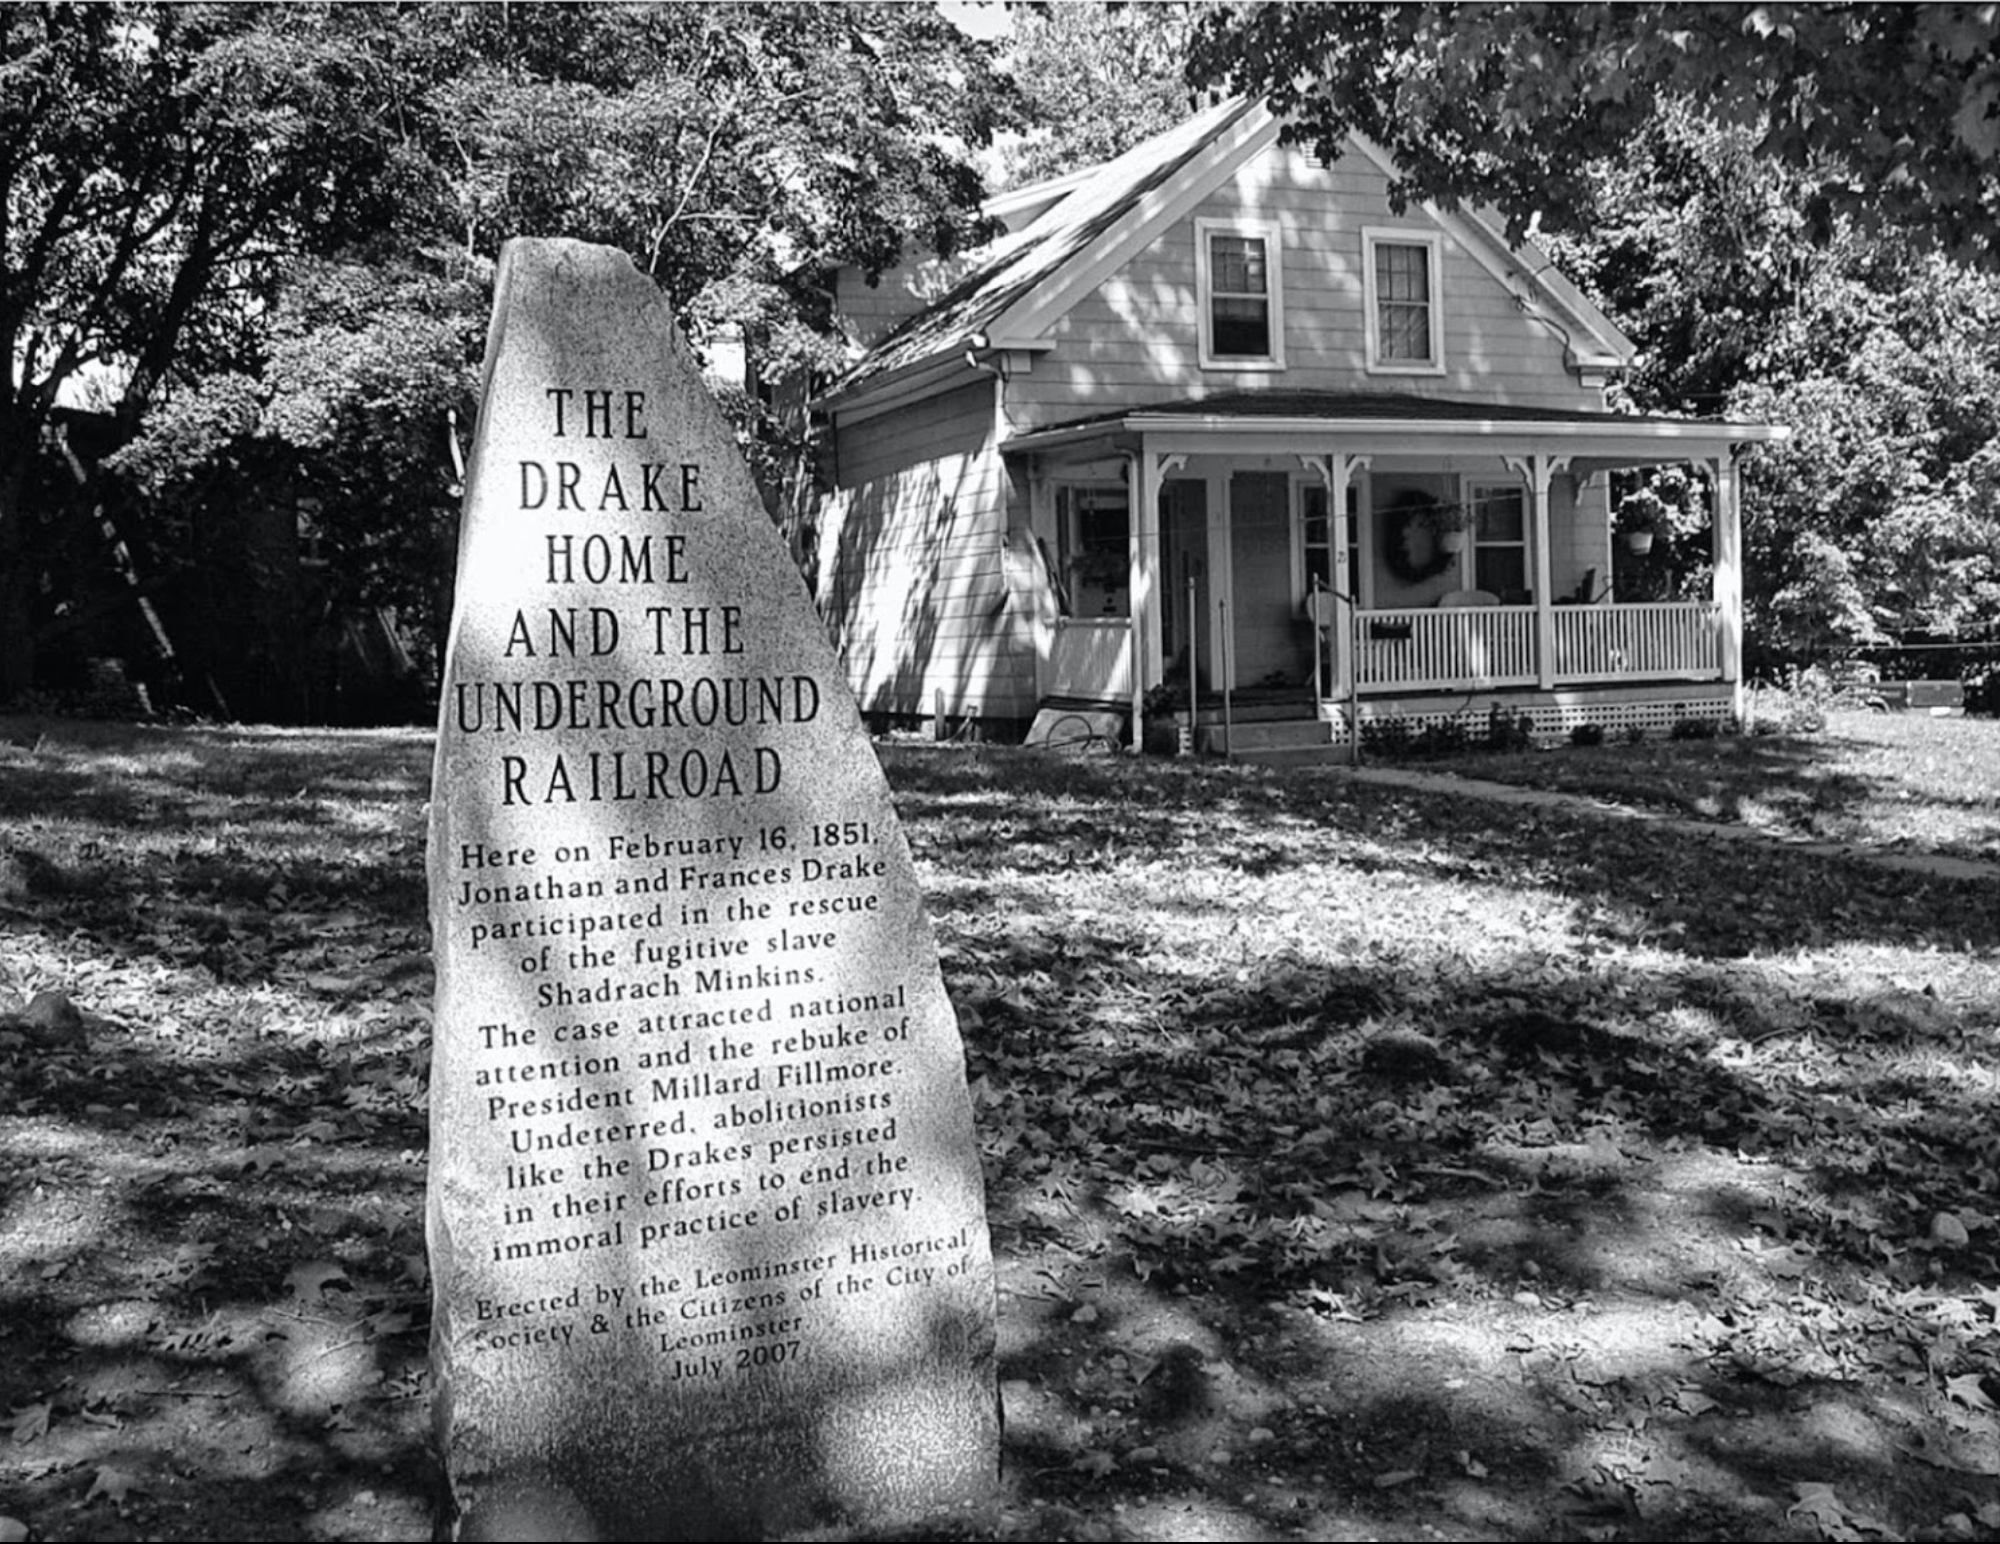 Photograph of the Drake House.